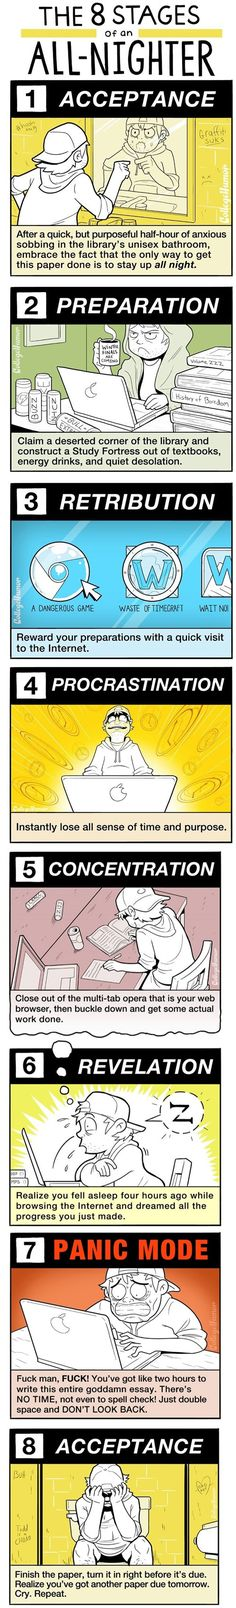 The 8 stages of an all-nighter! Hilarious but true!